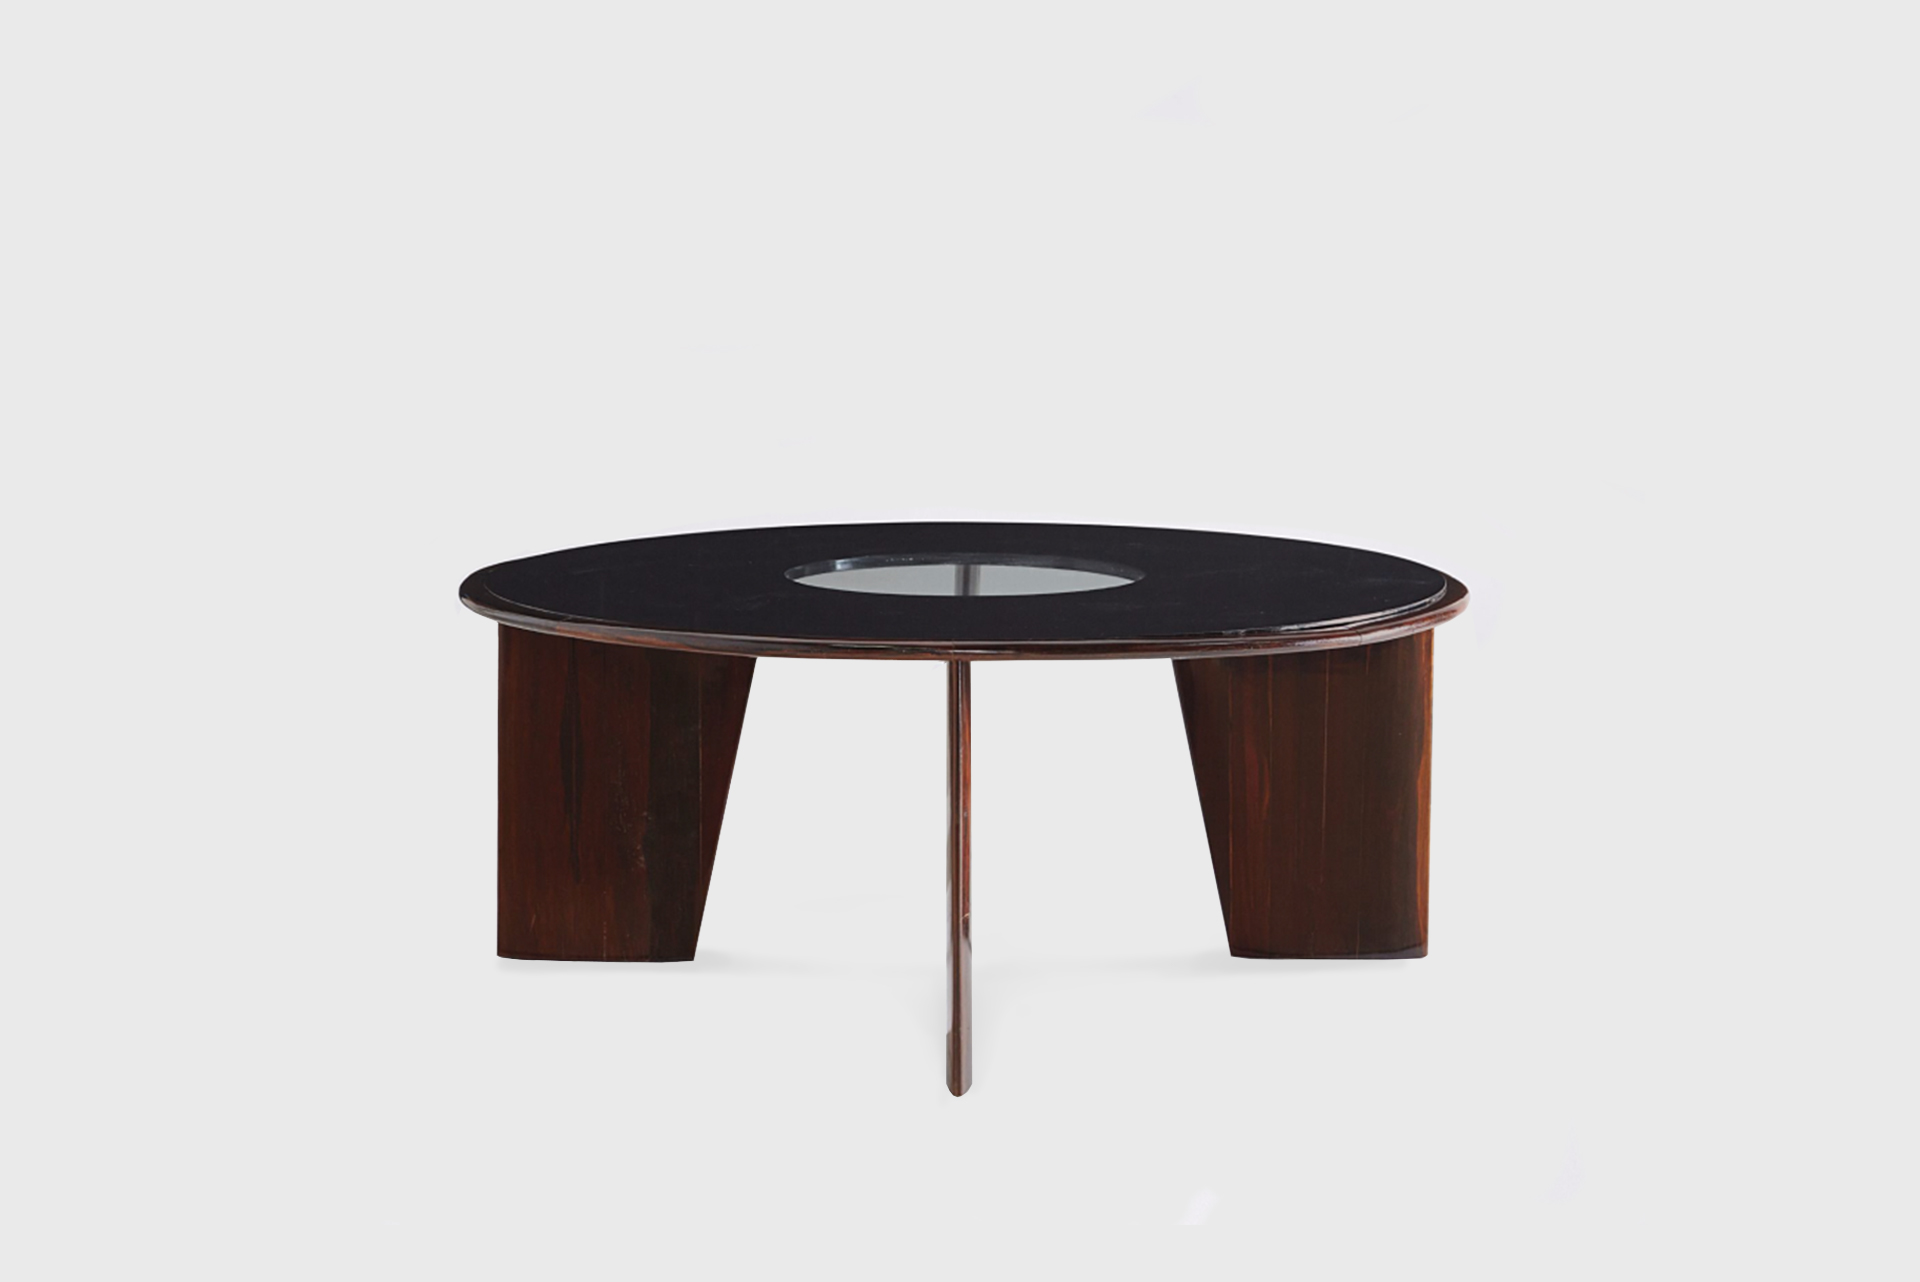 Dining table model Brasil, 1960s Brazilian rosewood, partially reverse-painted glass, painted wood